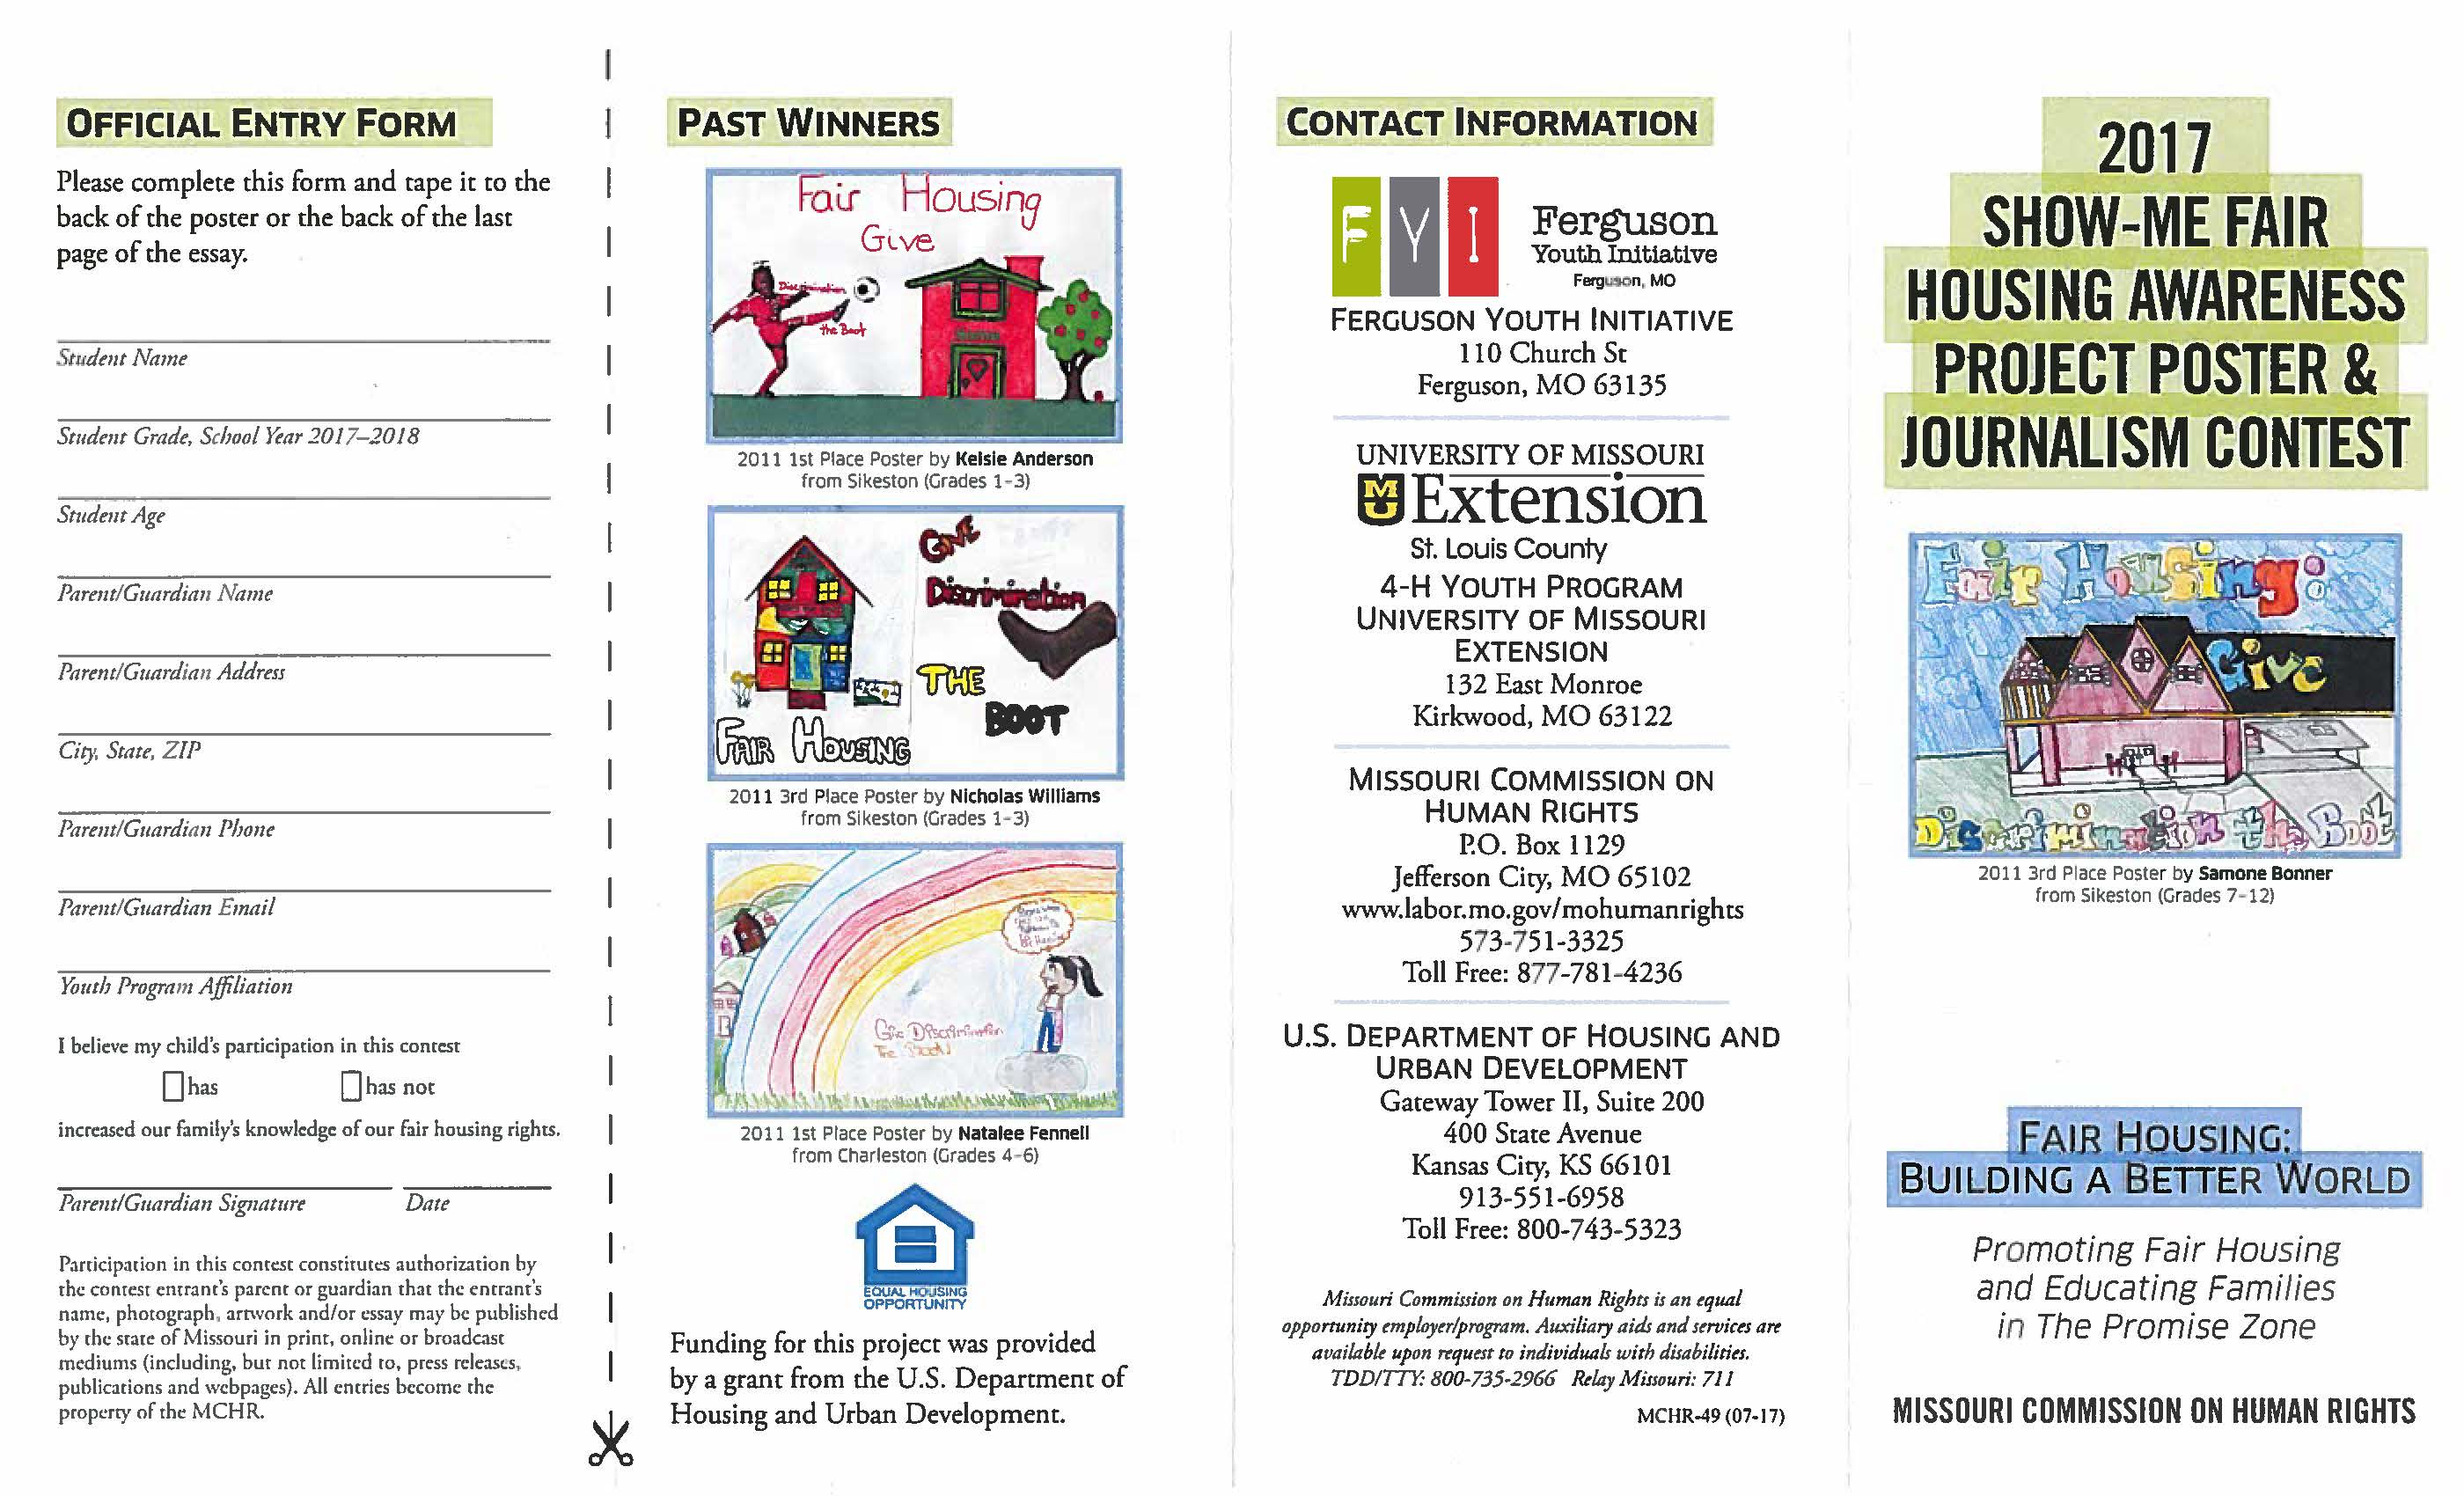 2017 Show-Me Fair Housing Awareness Project Poster & Journalism Contest